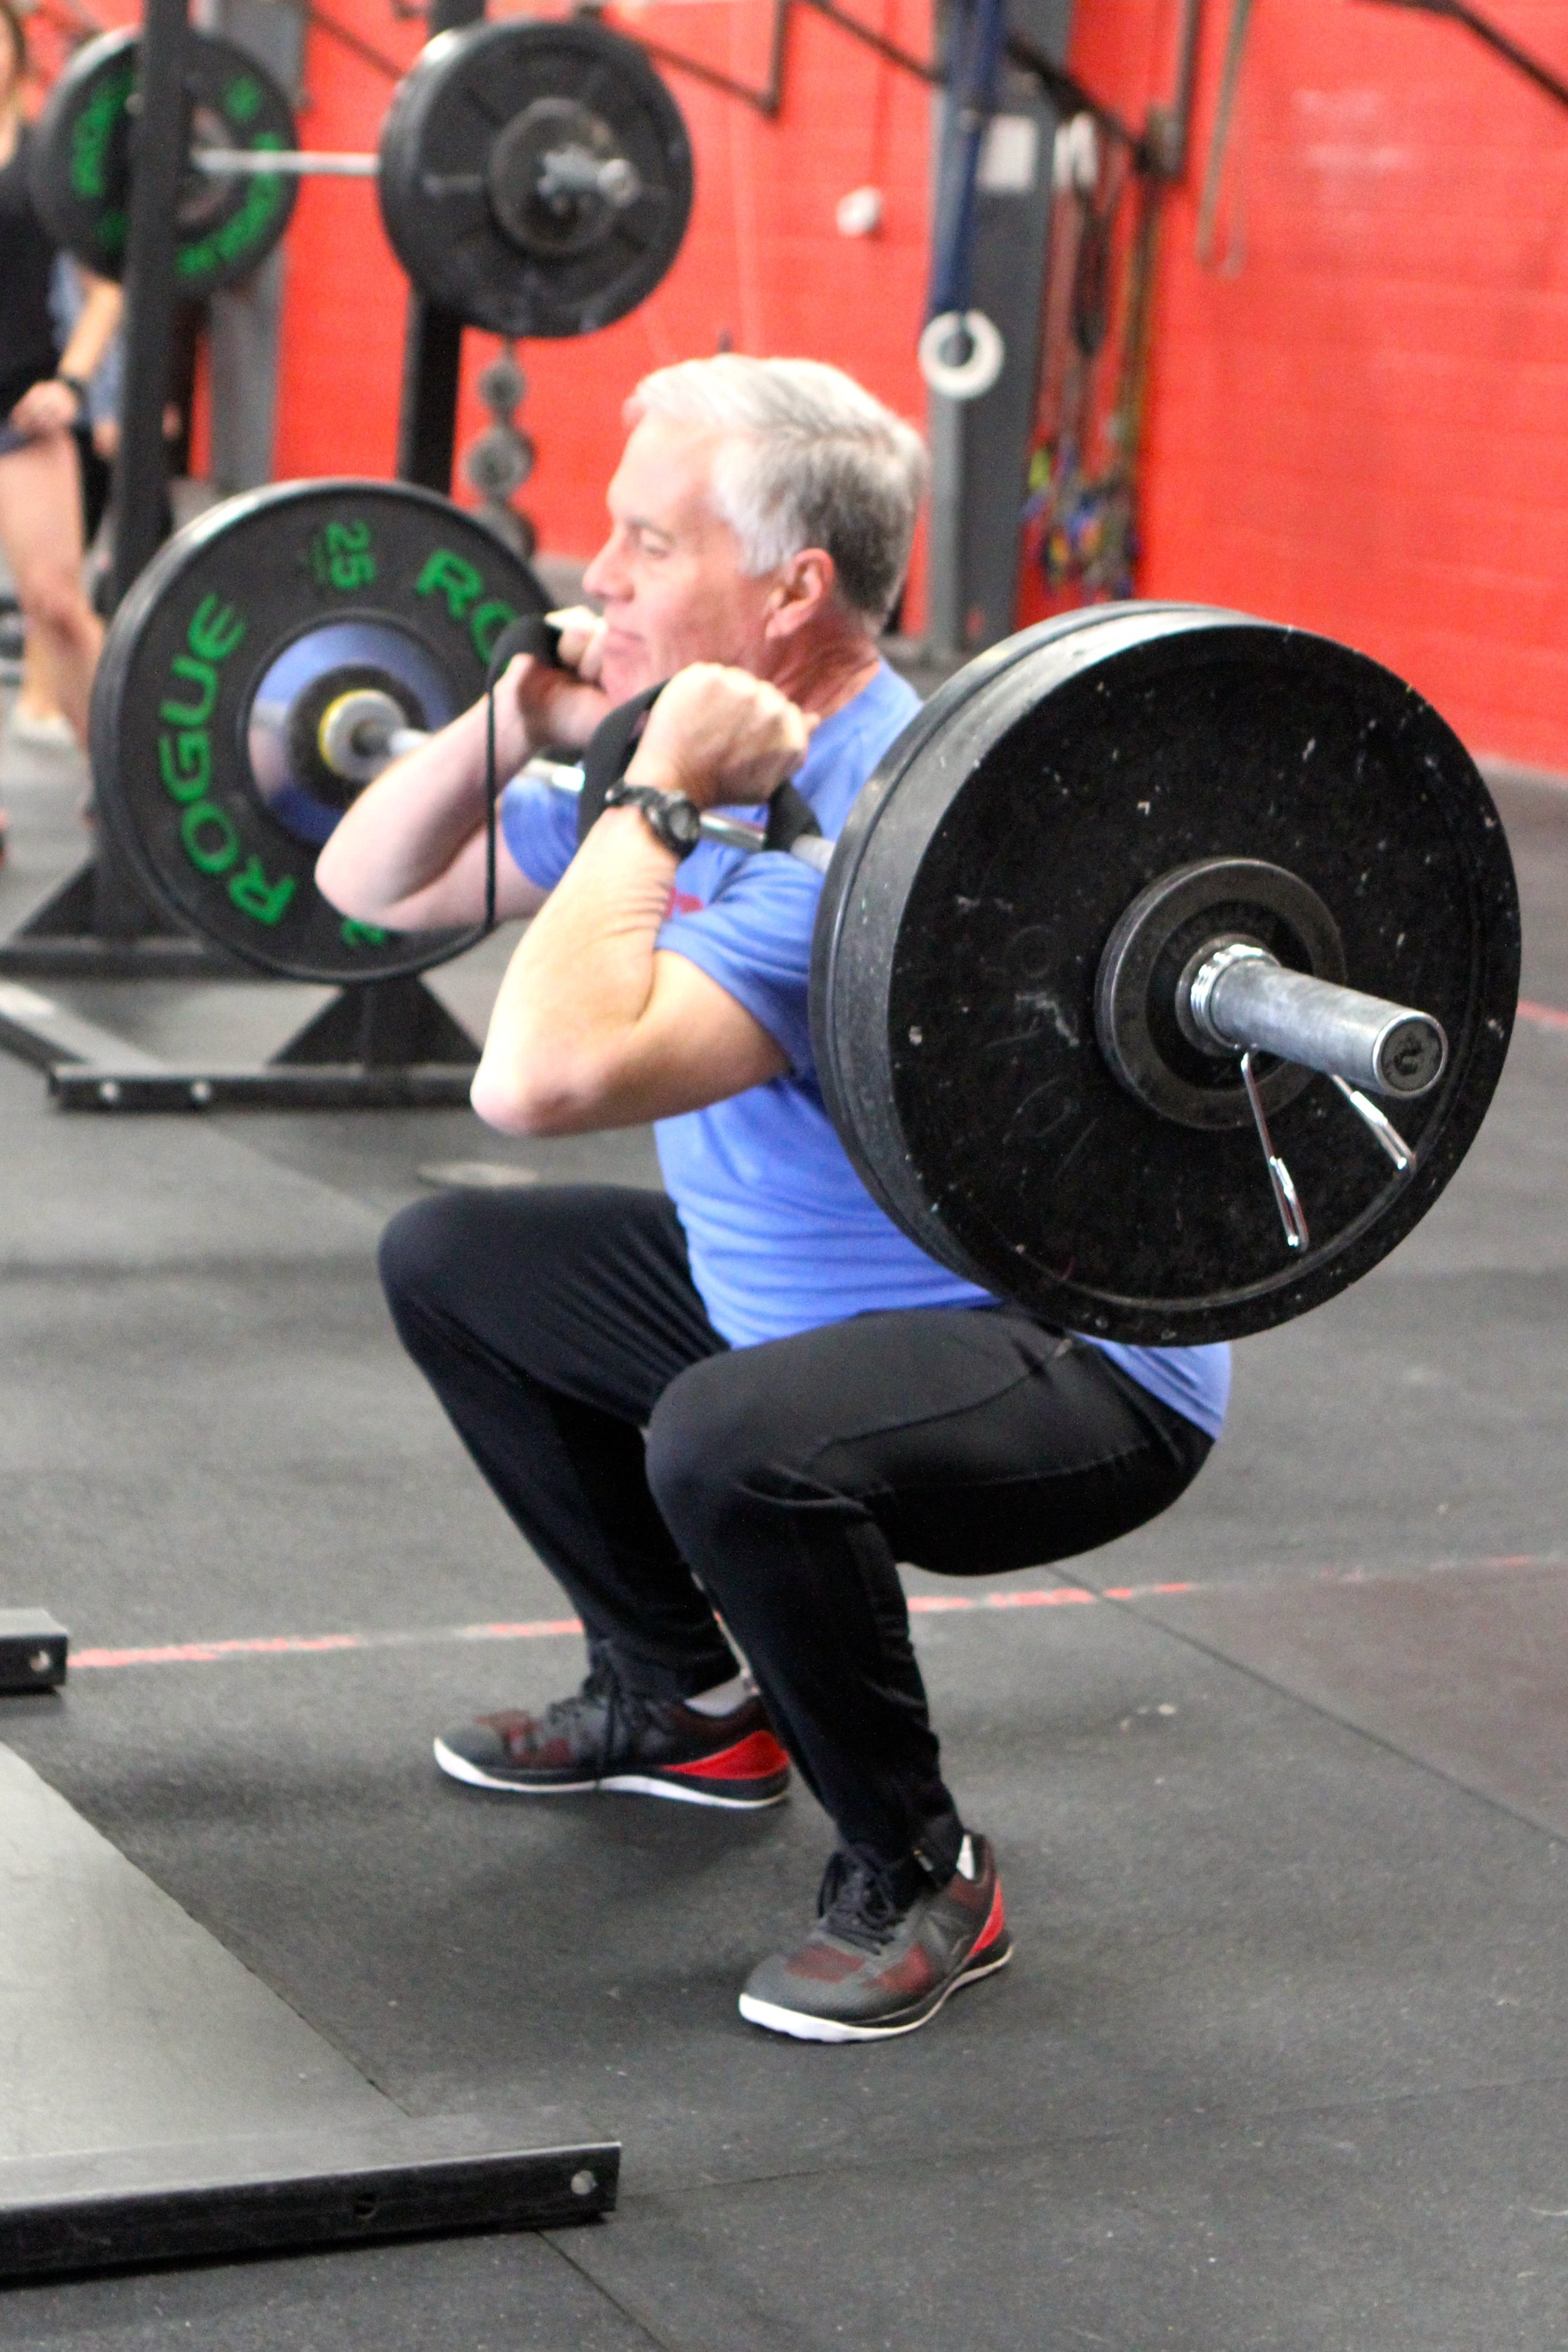 21c10bb0a84a Don t let that stop you! There are many alternatives to keep you moving and  getting stronger. Box squats and prowler pushes are great for back  injuries